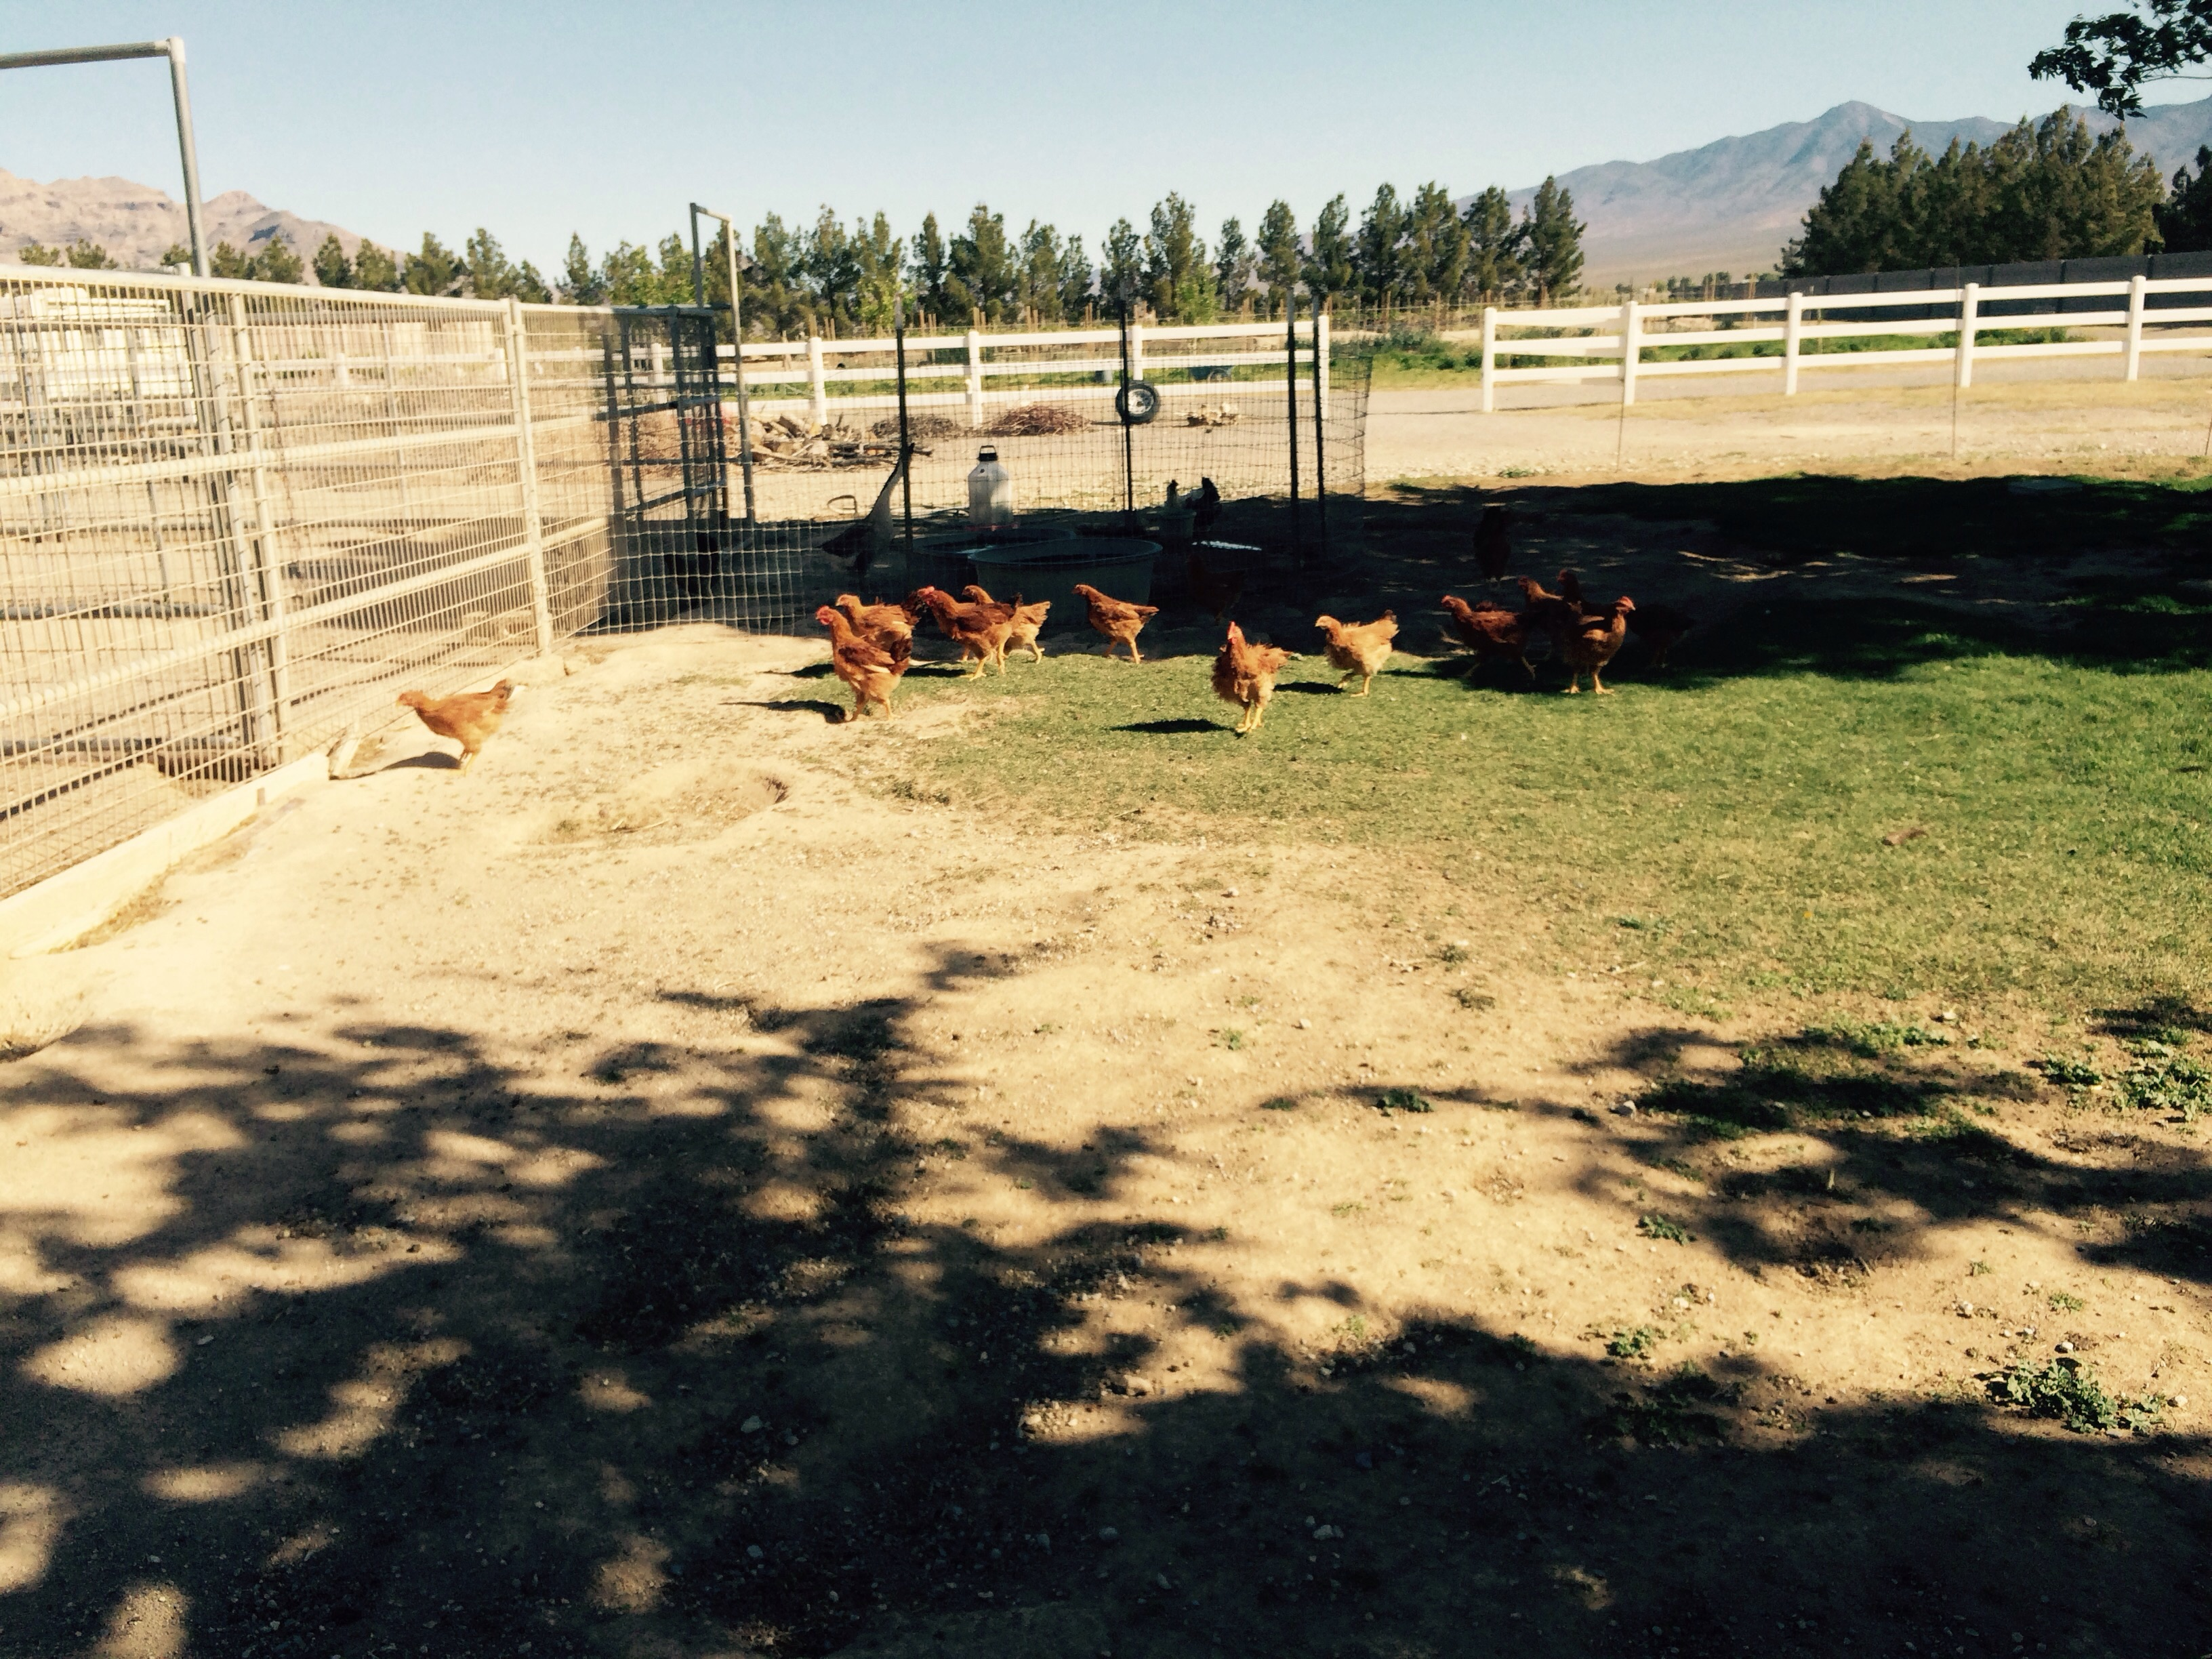 The wind doesn't bother the red ranger chickens out on pasture